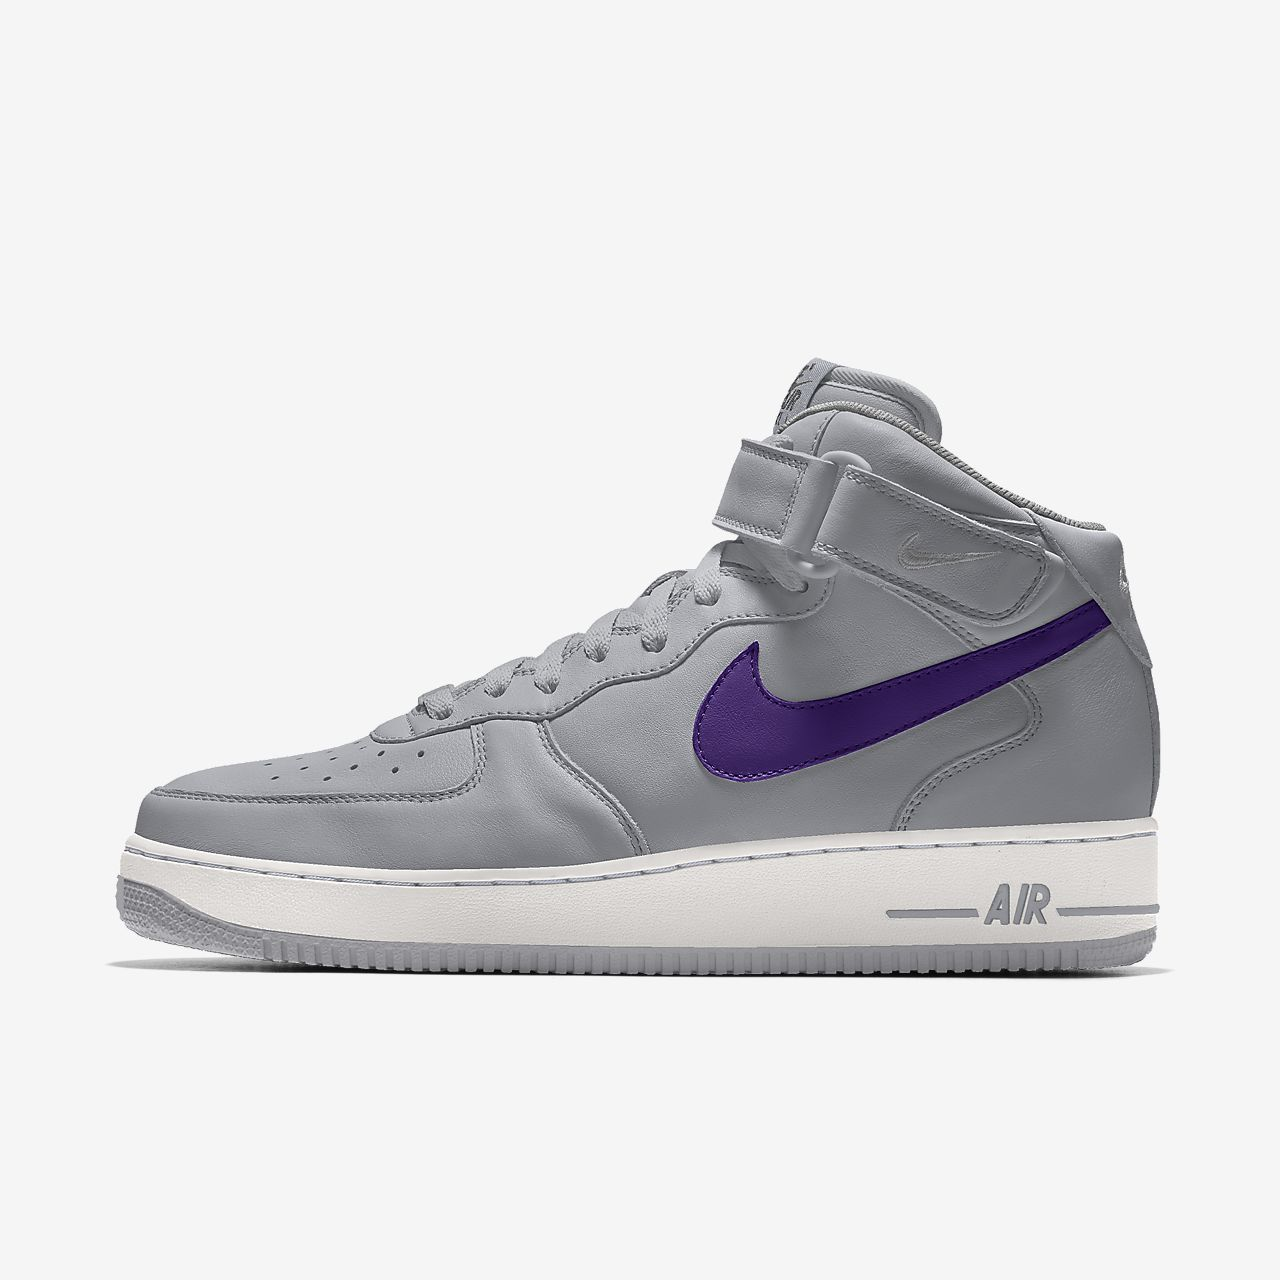 Specialdesignad sko Nike Air Force 1 Mid By You för kvinnor